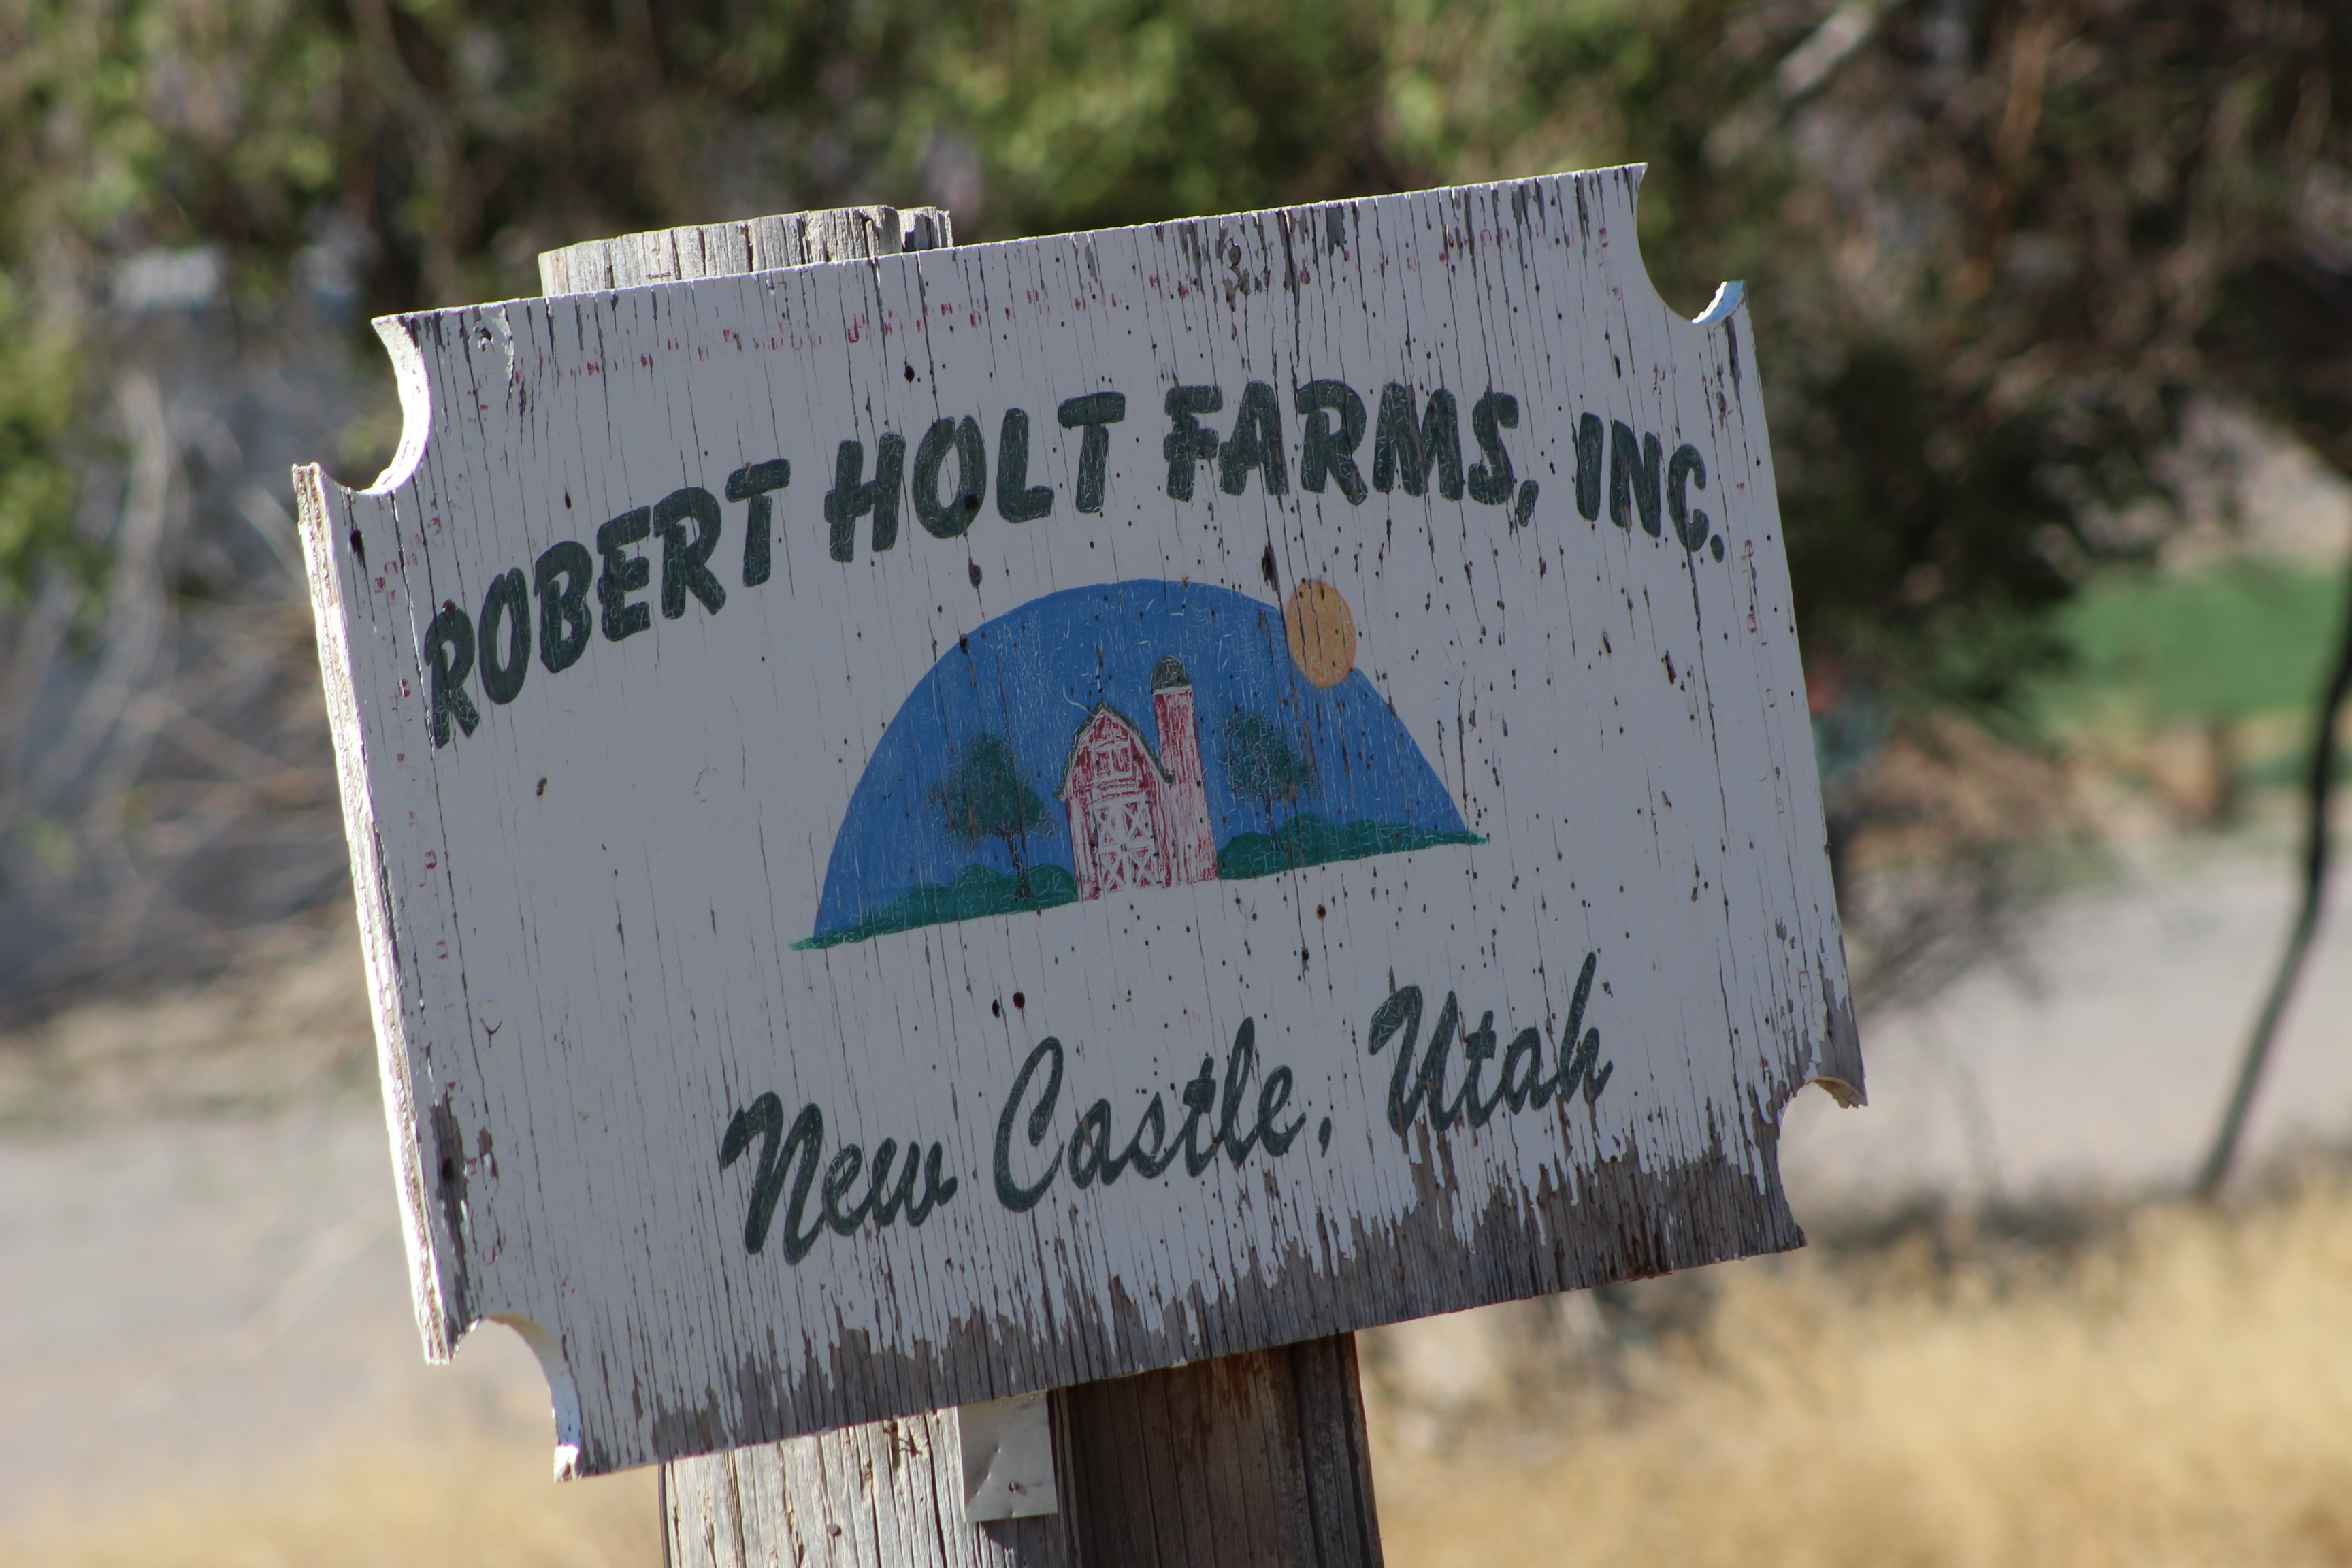 The west end of Iron County is home to the largest business district in the county. Robert Holt owns the biggest dairy farm in all of Southern Utah. Iron County, Utah, July 15, 2016 | Photo by Tracie Sullivan, St. George / Cedar City News